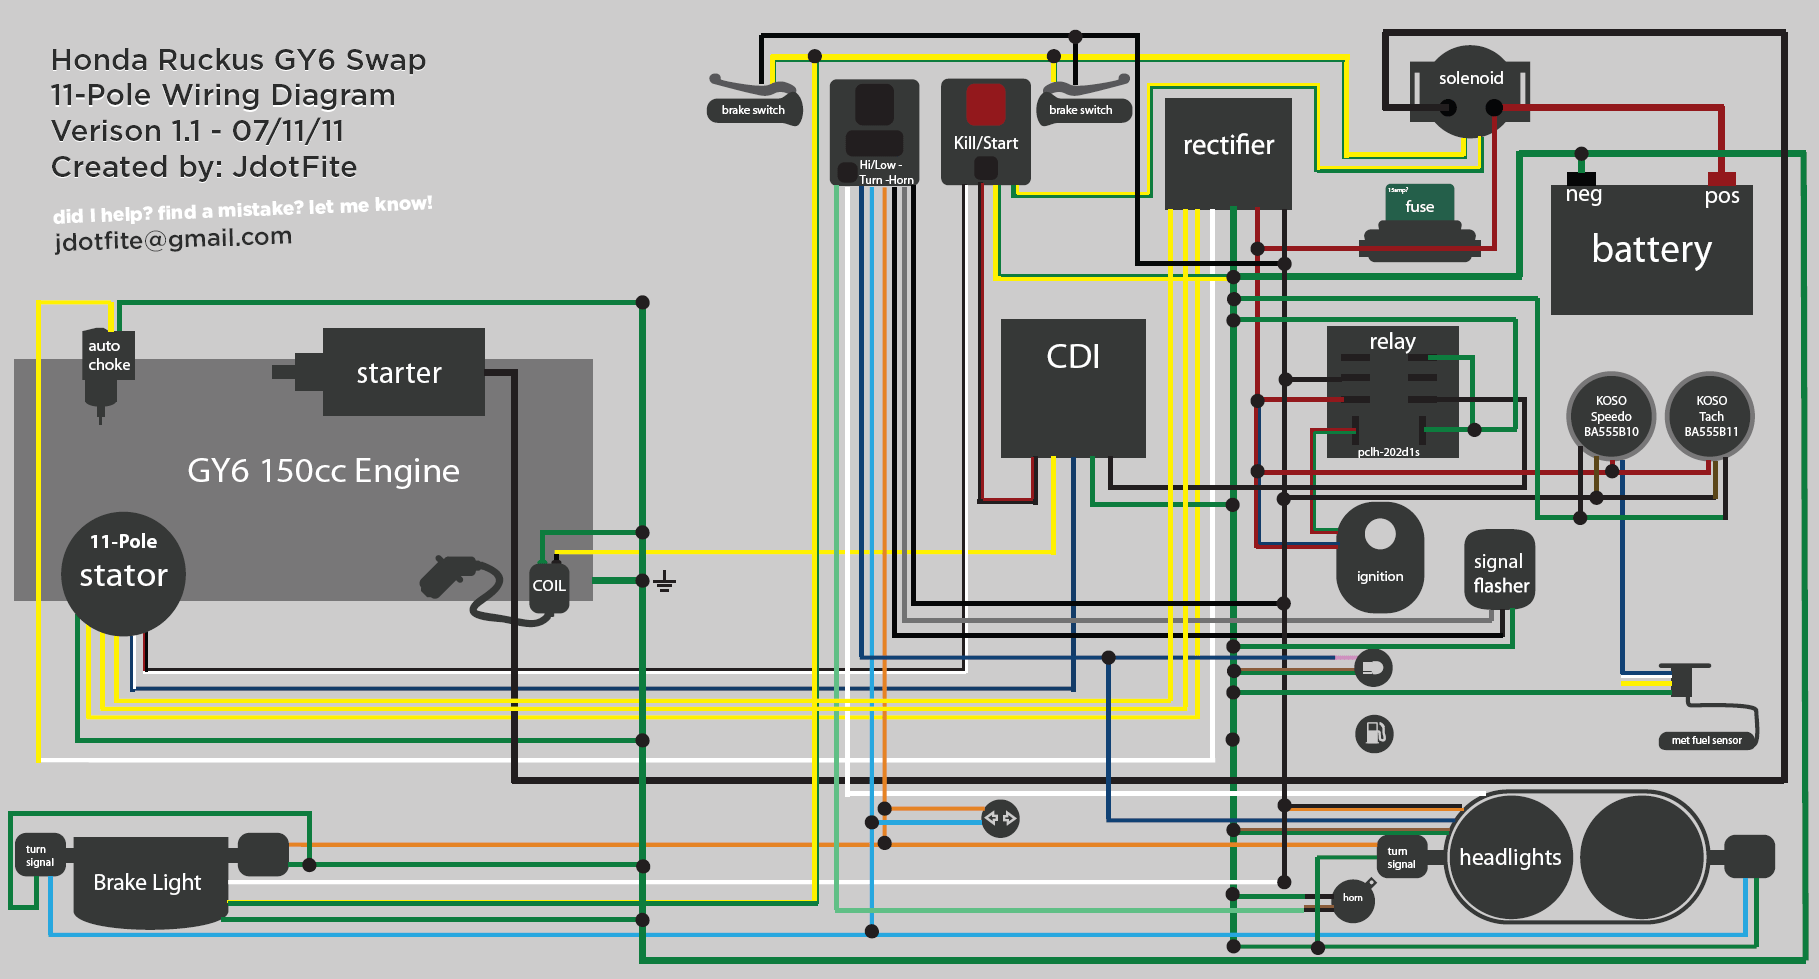 ruckus gy6 wiring diagram honda ruckus gy6 wiring diagram 2012 honda ruckus engine gy6 buggy wiring harness at gsmx.co